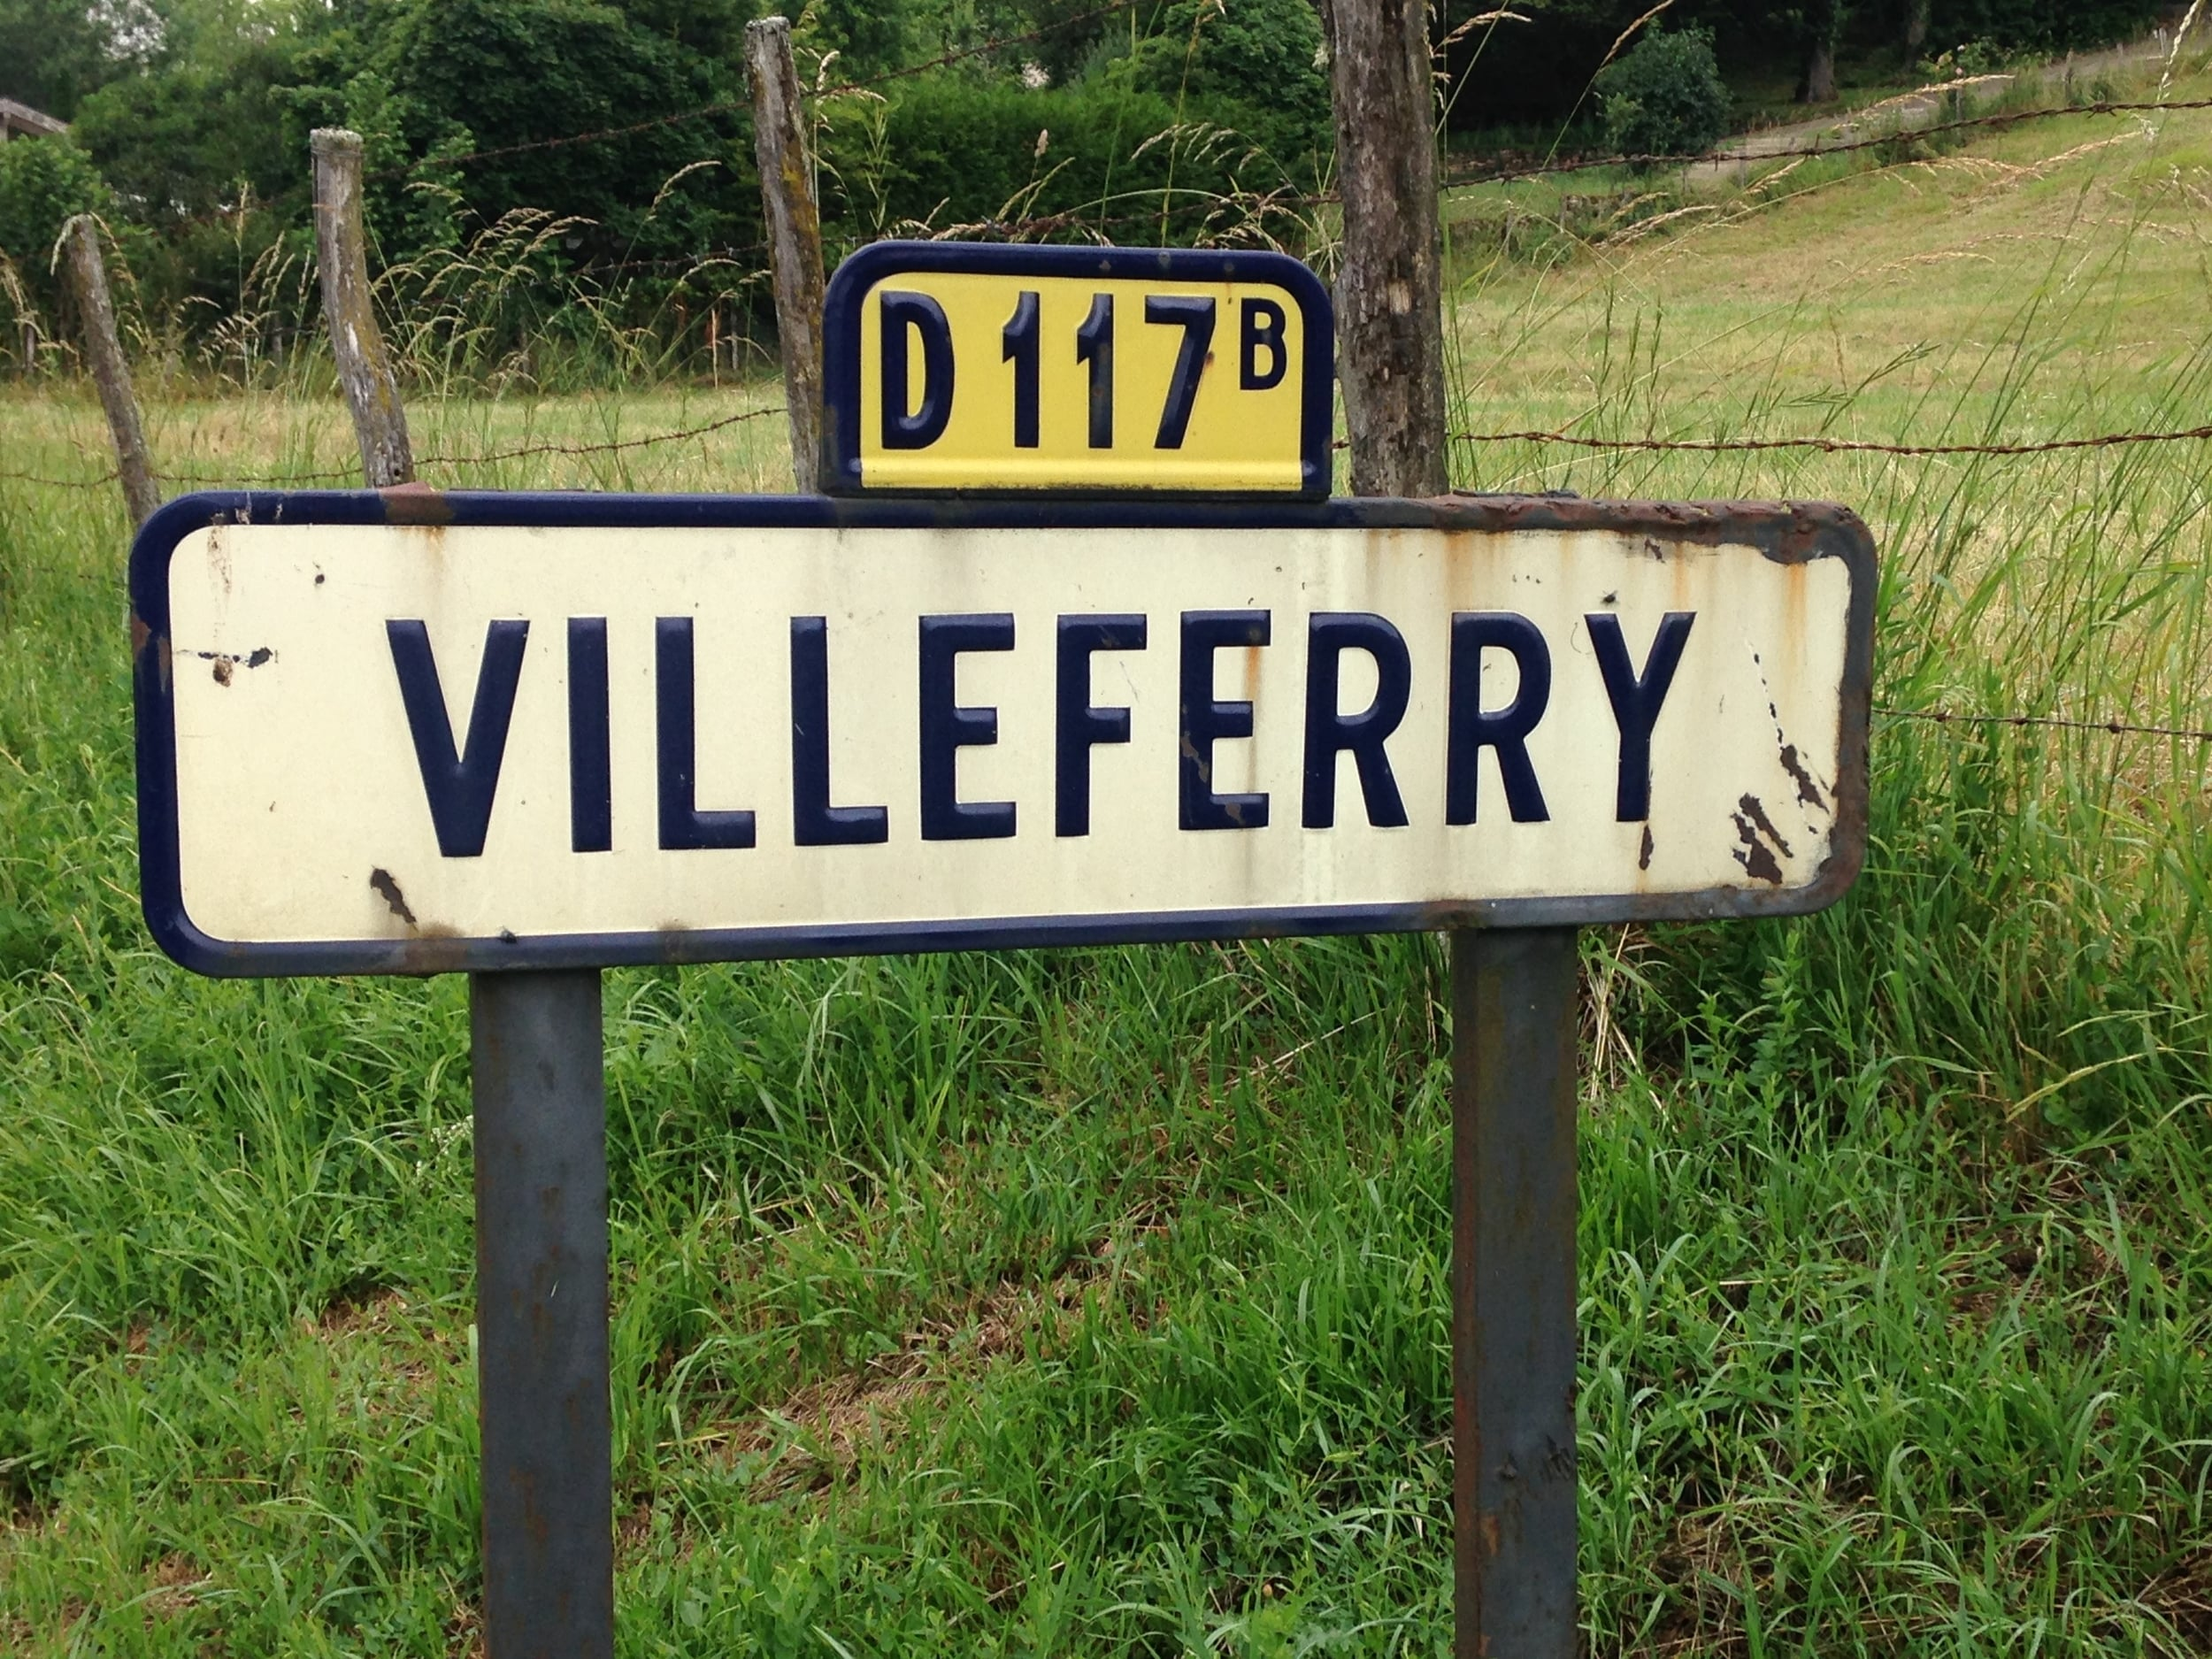 Villeferry: Where all your resolutions come true.